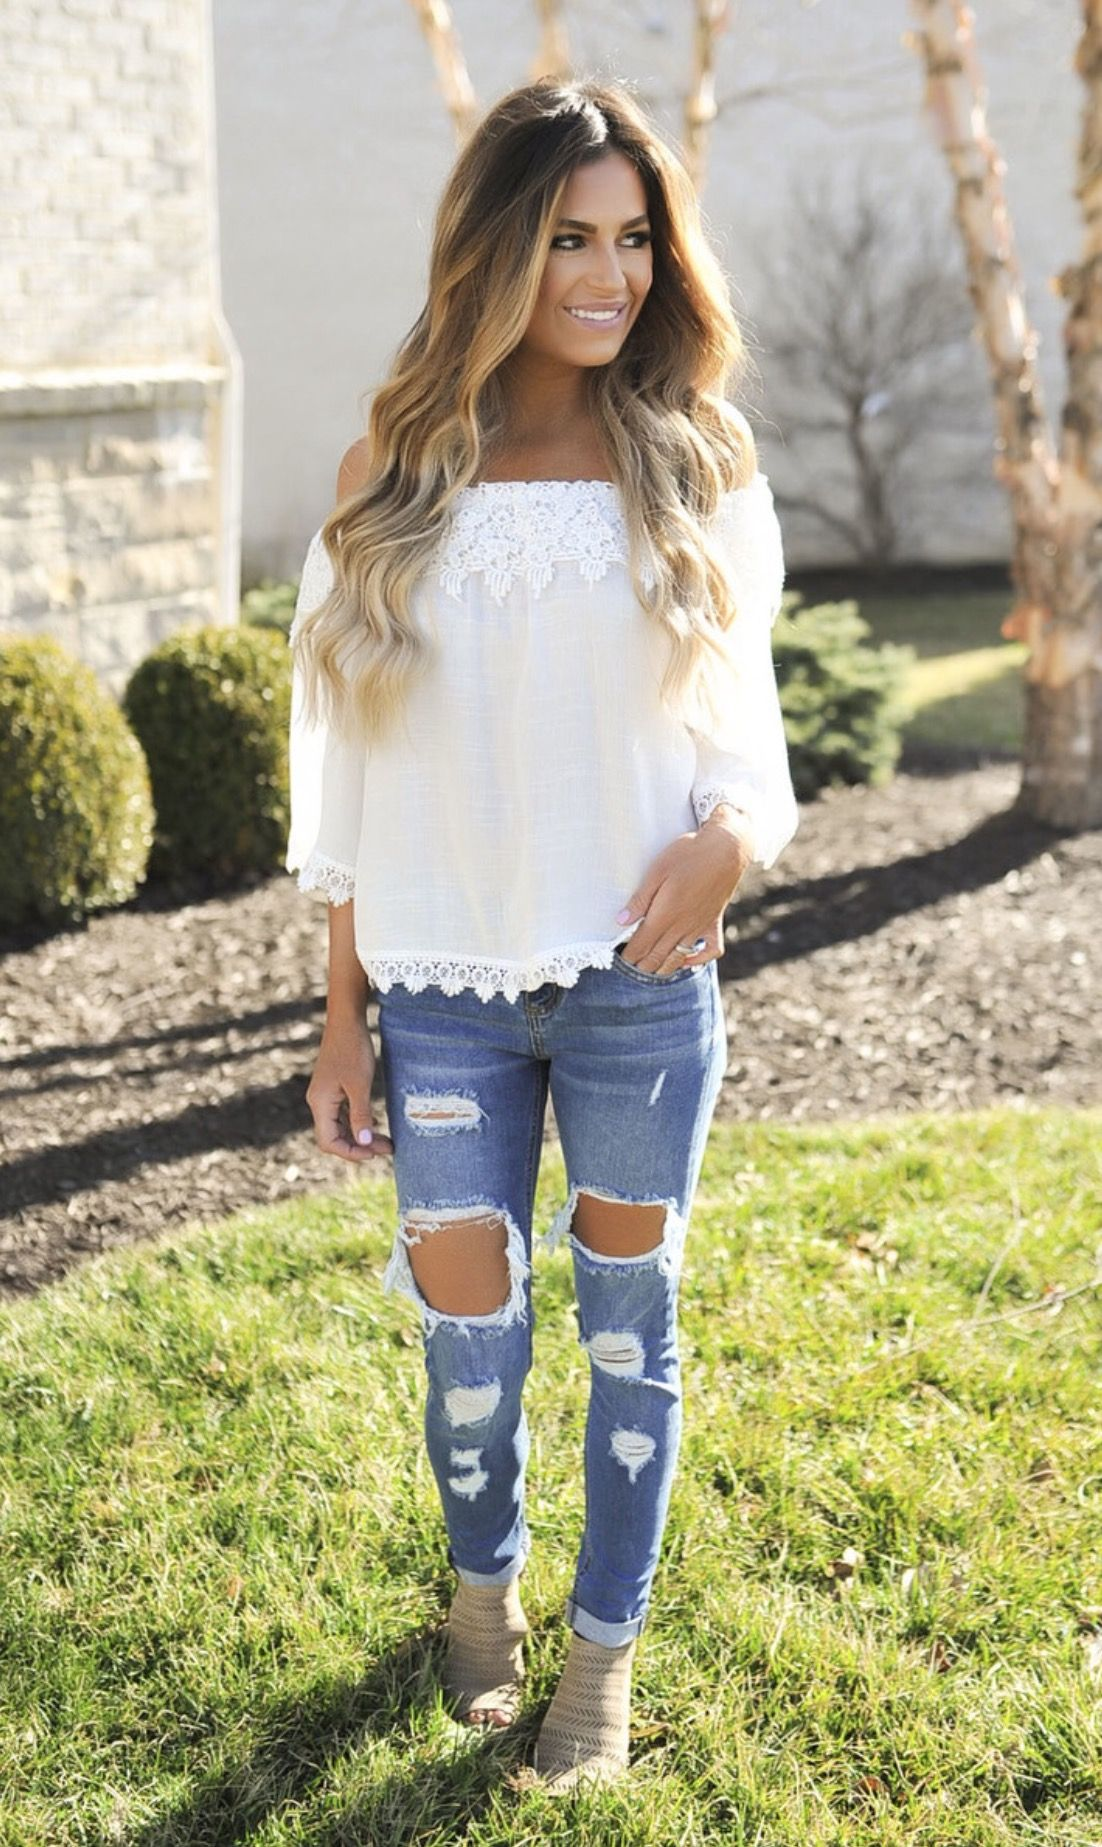 20 Cute Outfits To Wear To A Concert Pictures And Ideas On Weric